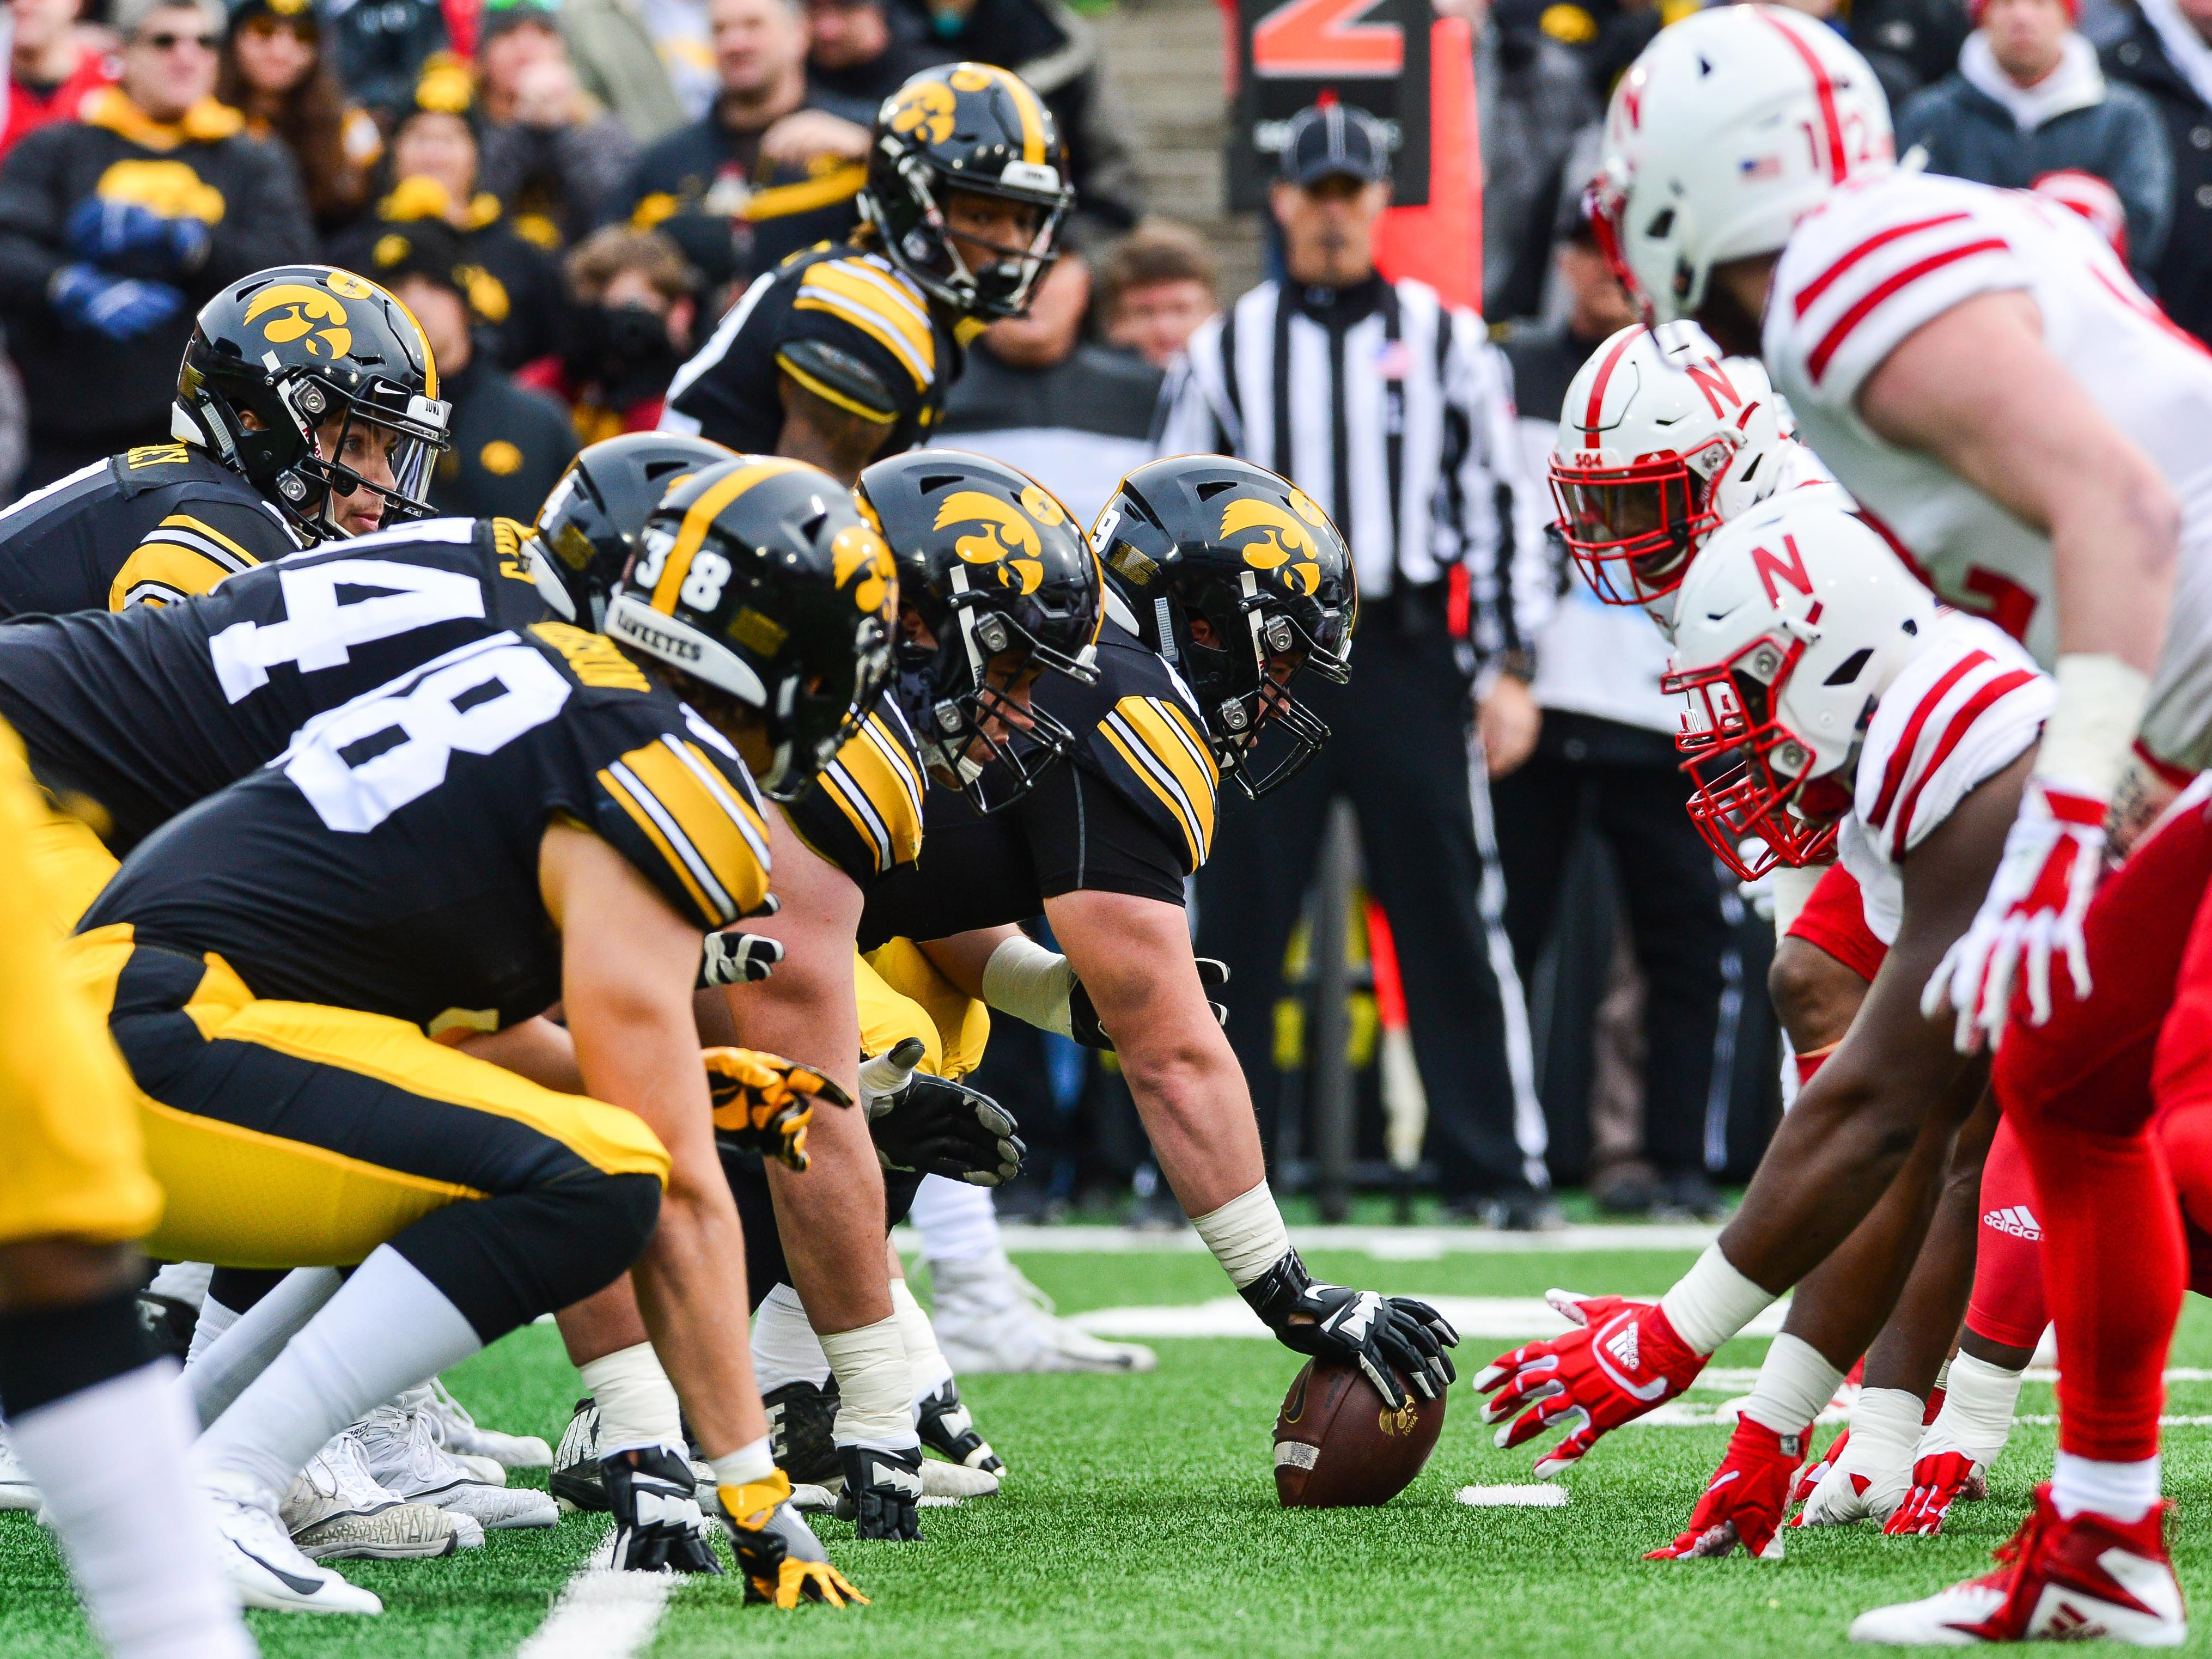 Iowa quarterback Nate Stanley looks over the line of scrimmage before taking a snap during the first quarter against Nebraska.